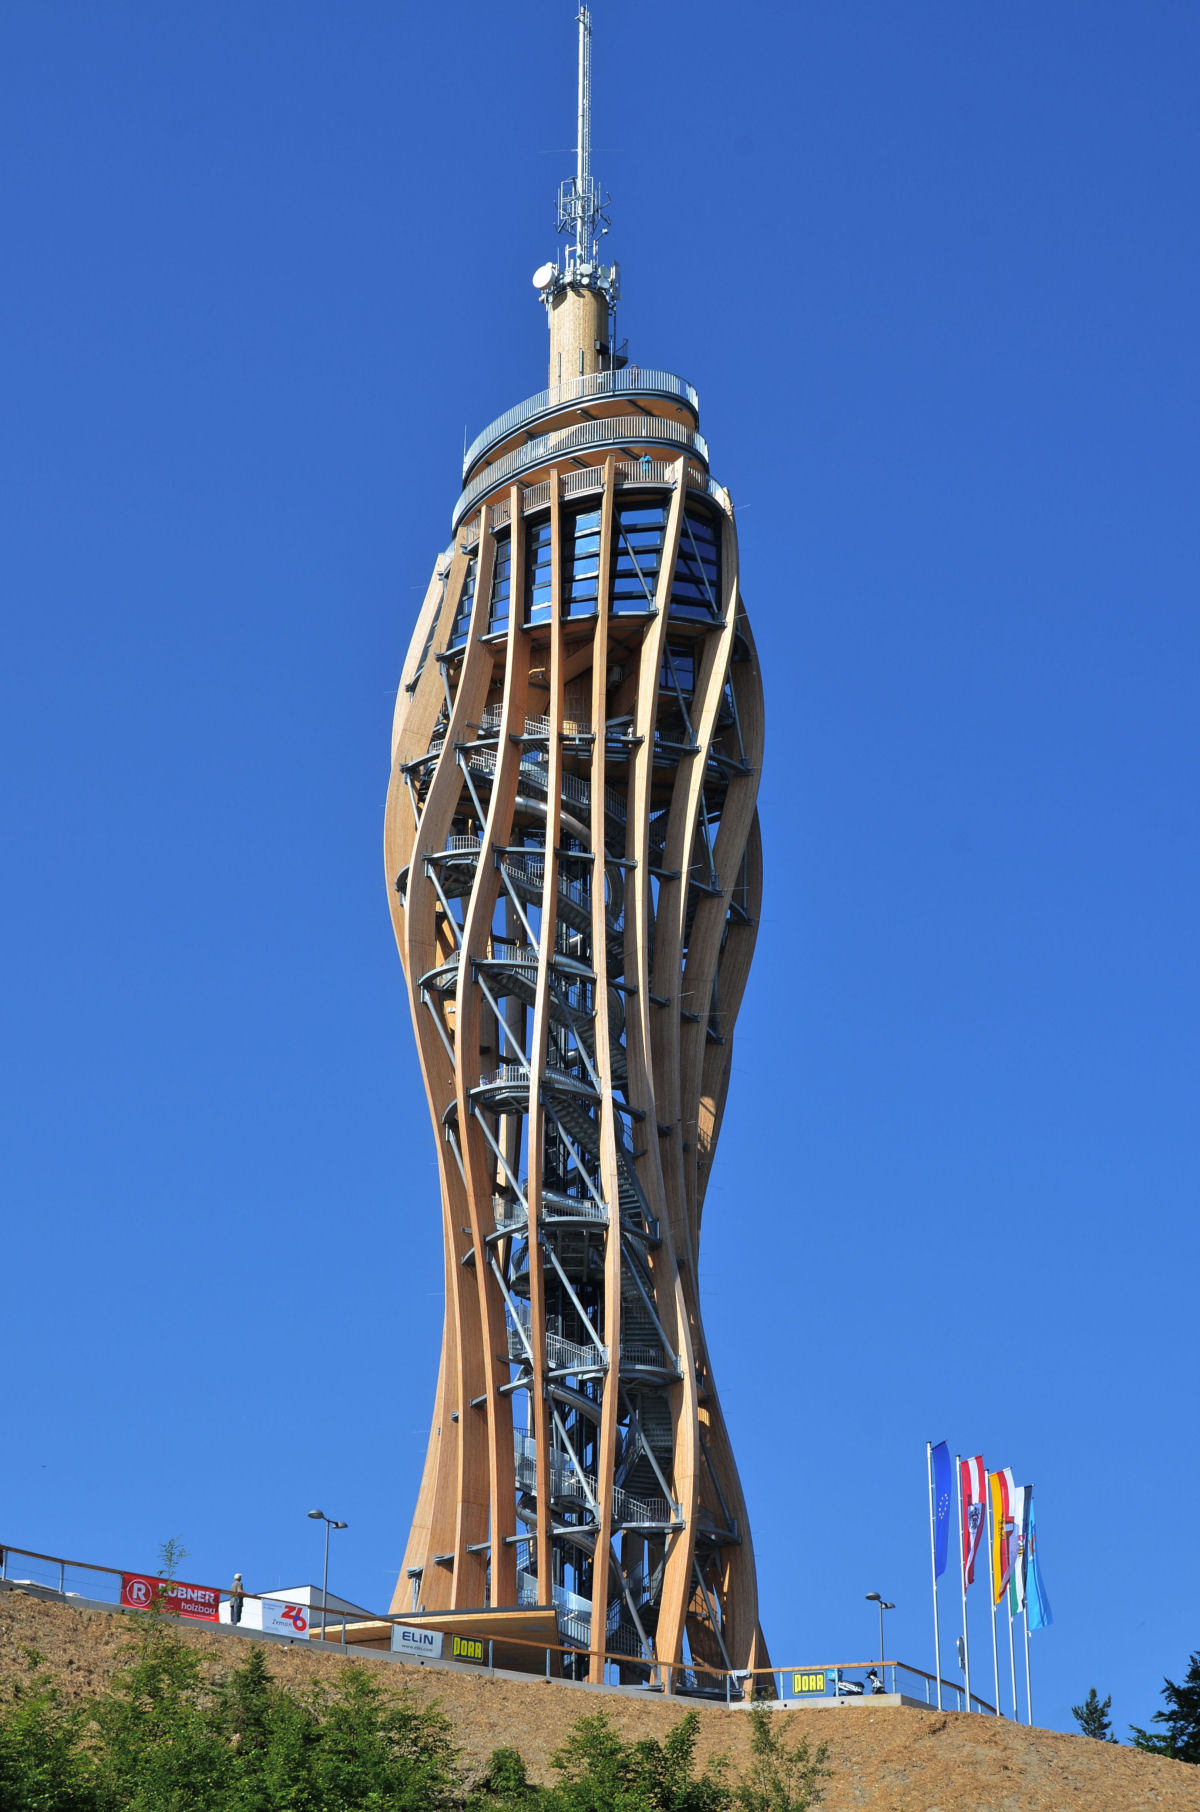 The Pyramidenkogel Observation Tower is the tallest wooden tower in the world at 100 meters